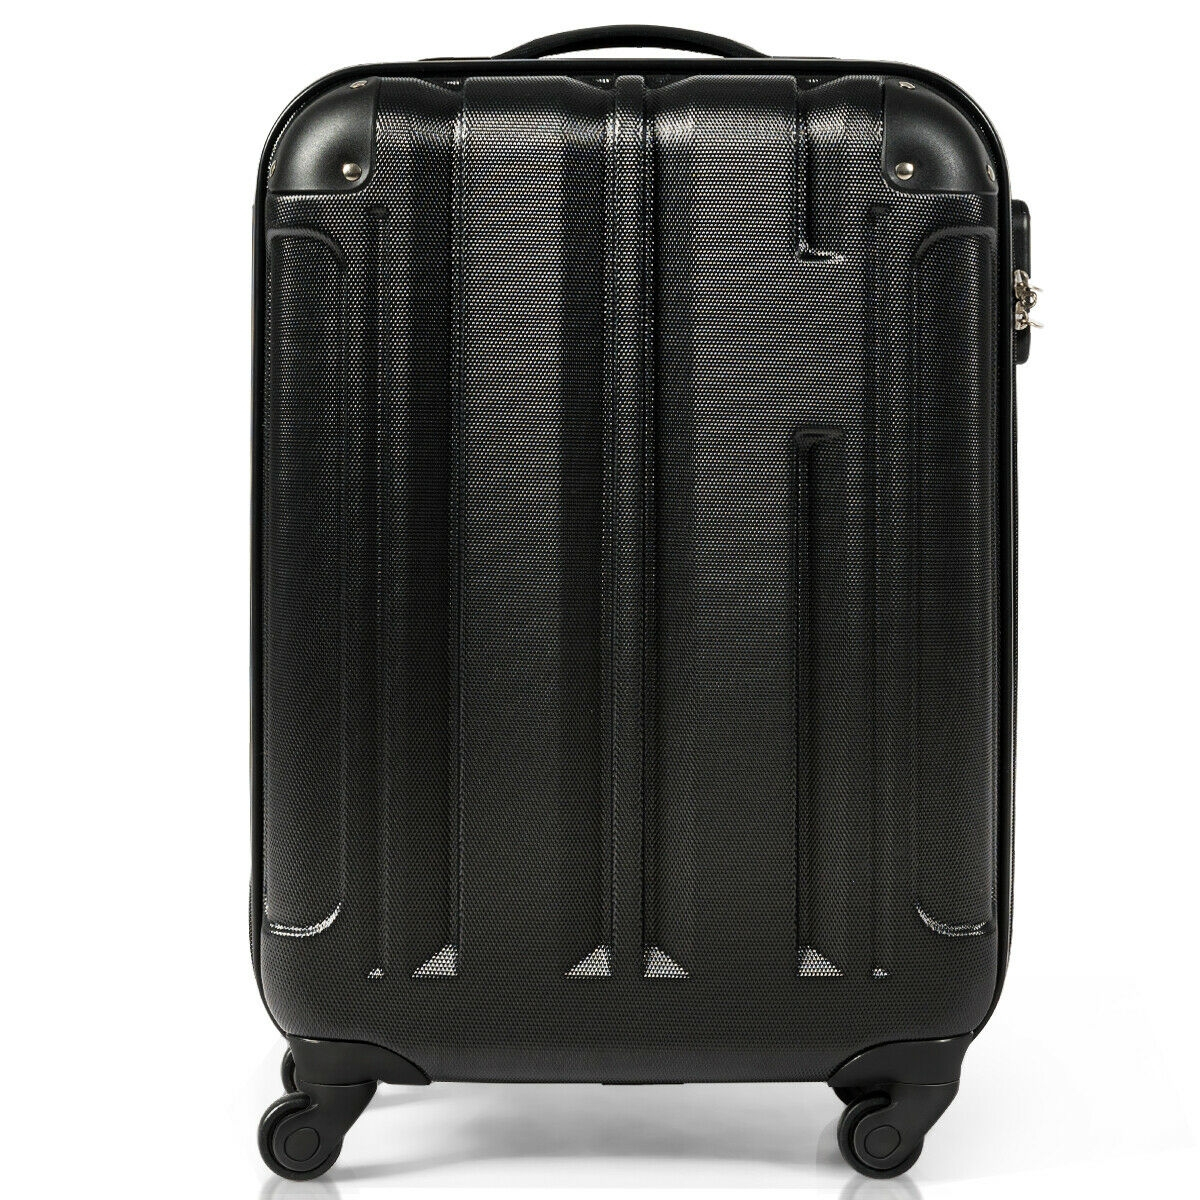 ABS Lightweight Hard Shell Luggage Suitcase with 4-Wheel, Black - 18 Inches